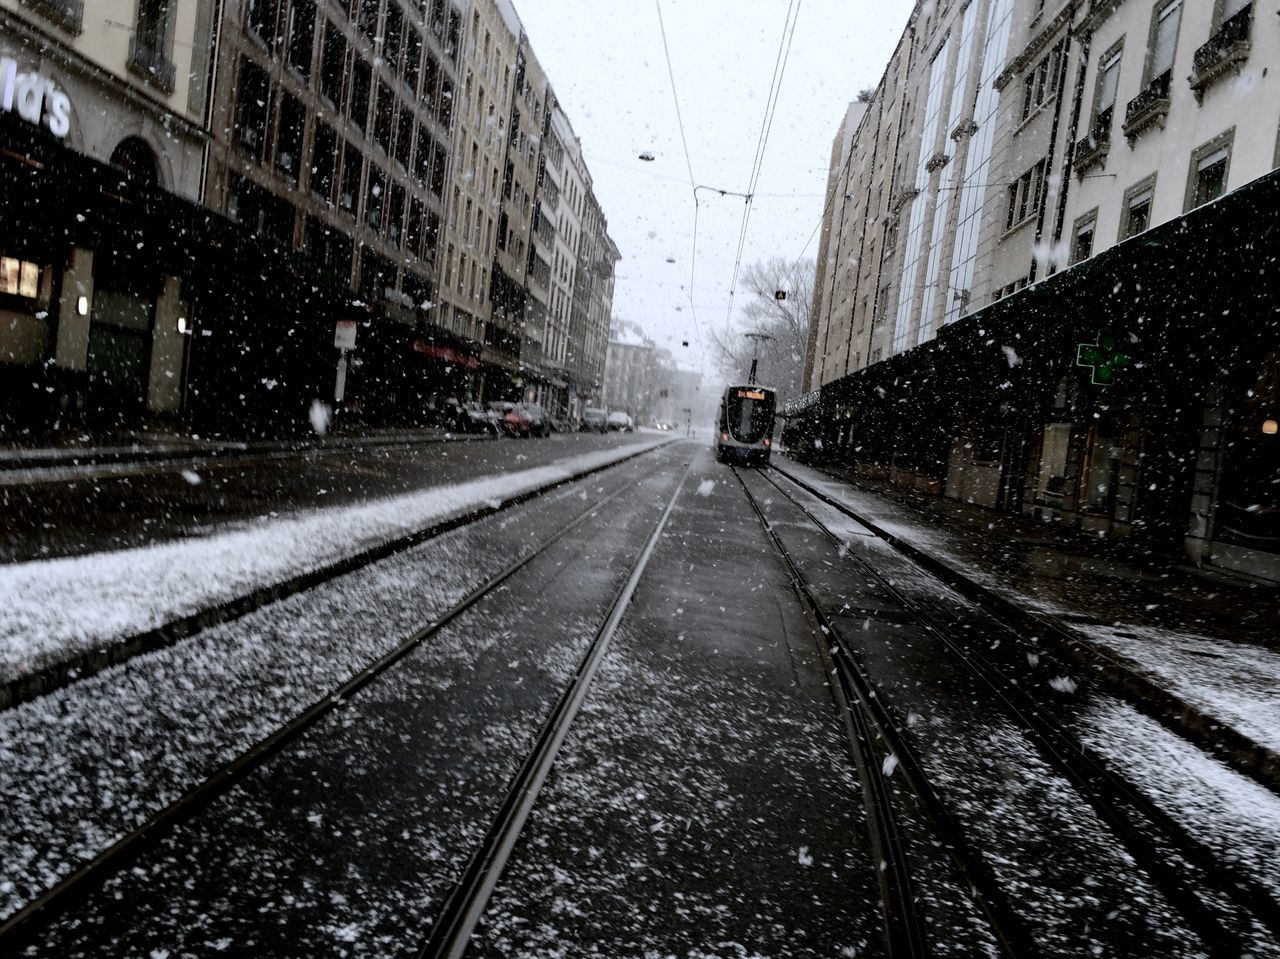 Europa City Dutch Angle Railroad Track Snow Street The Way Forward Tramway Winter